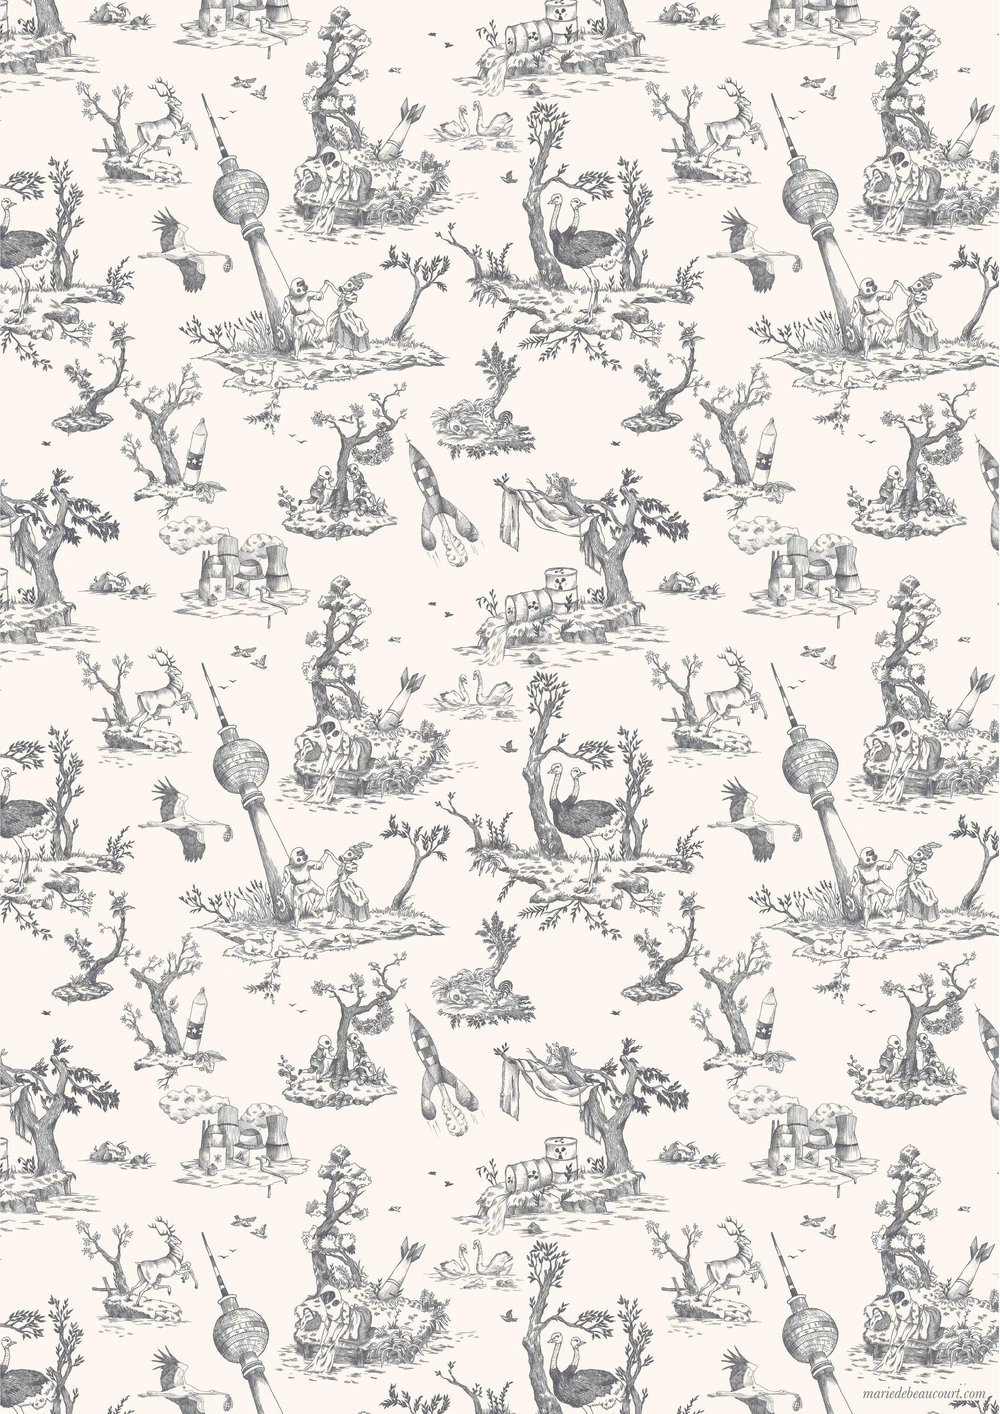 marie-de-beaucourt-illustration-surface-pattern-dystopian-toile-de-jouy-anthracite-2017-web.jpg